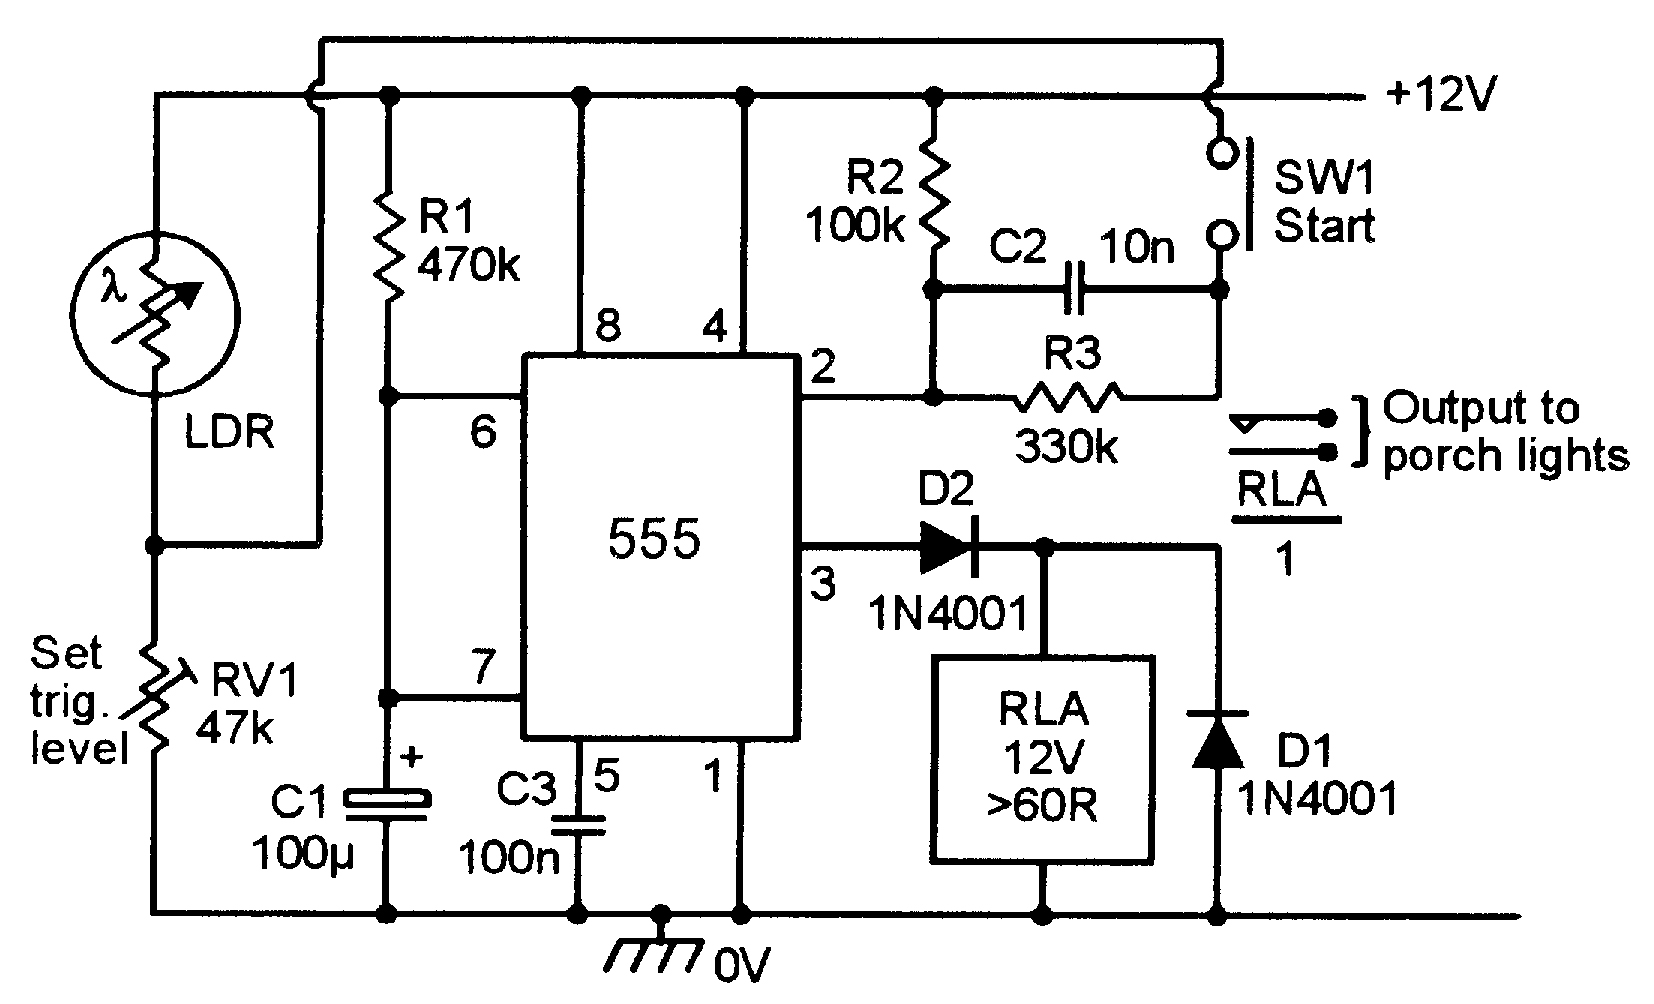 555 Monostable Circuits Nuts Volts Magazine The Pulse Width Modulation Circuit Diagrams From Video Action Here Is Such That If Vehicle Has Its Lights Off They Can Be Turned On For A Pre Set 50s Period By Briefly Pressing Start Switch